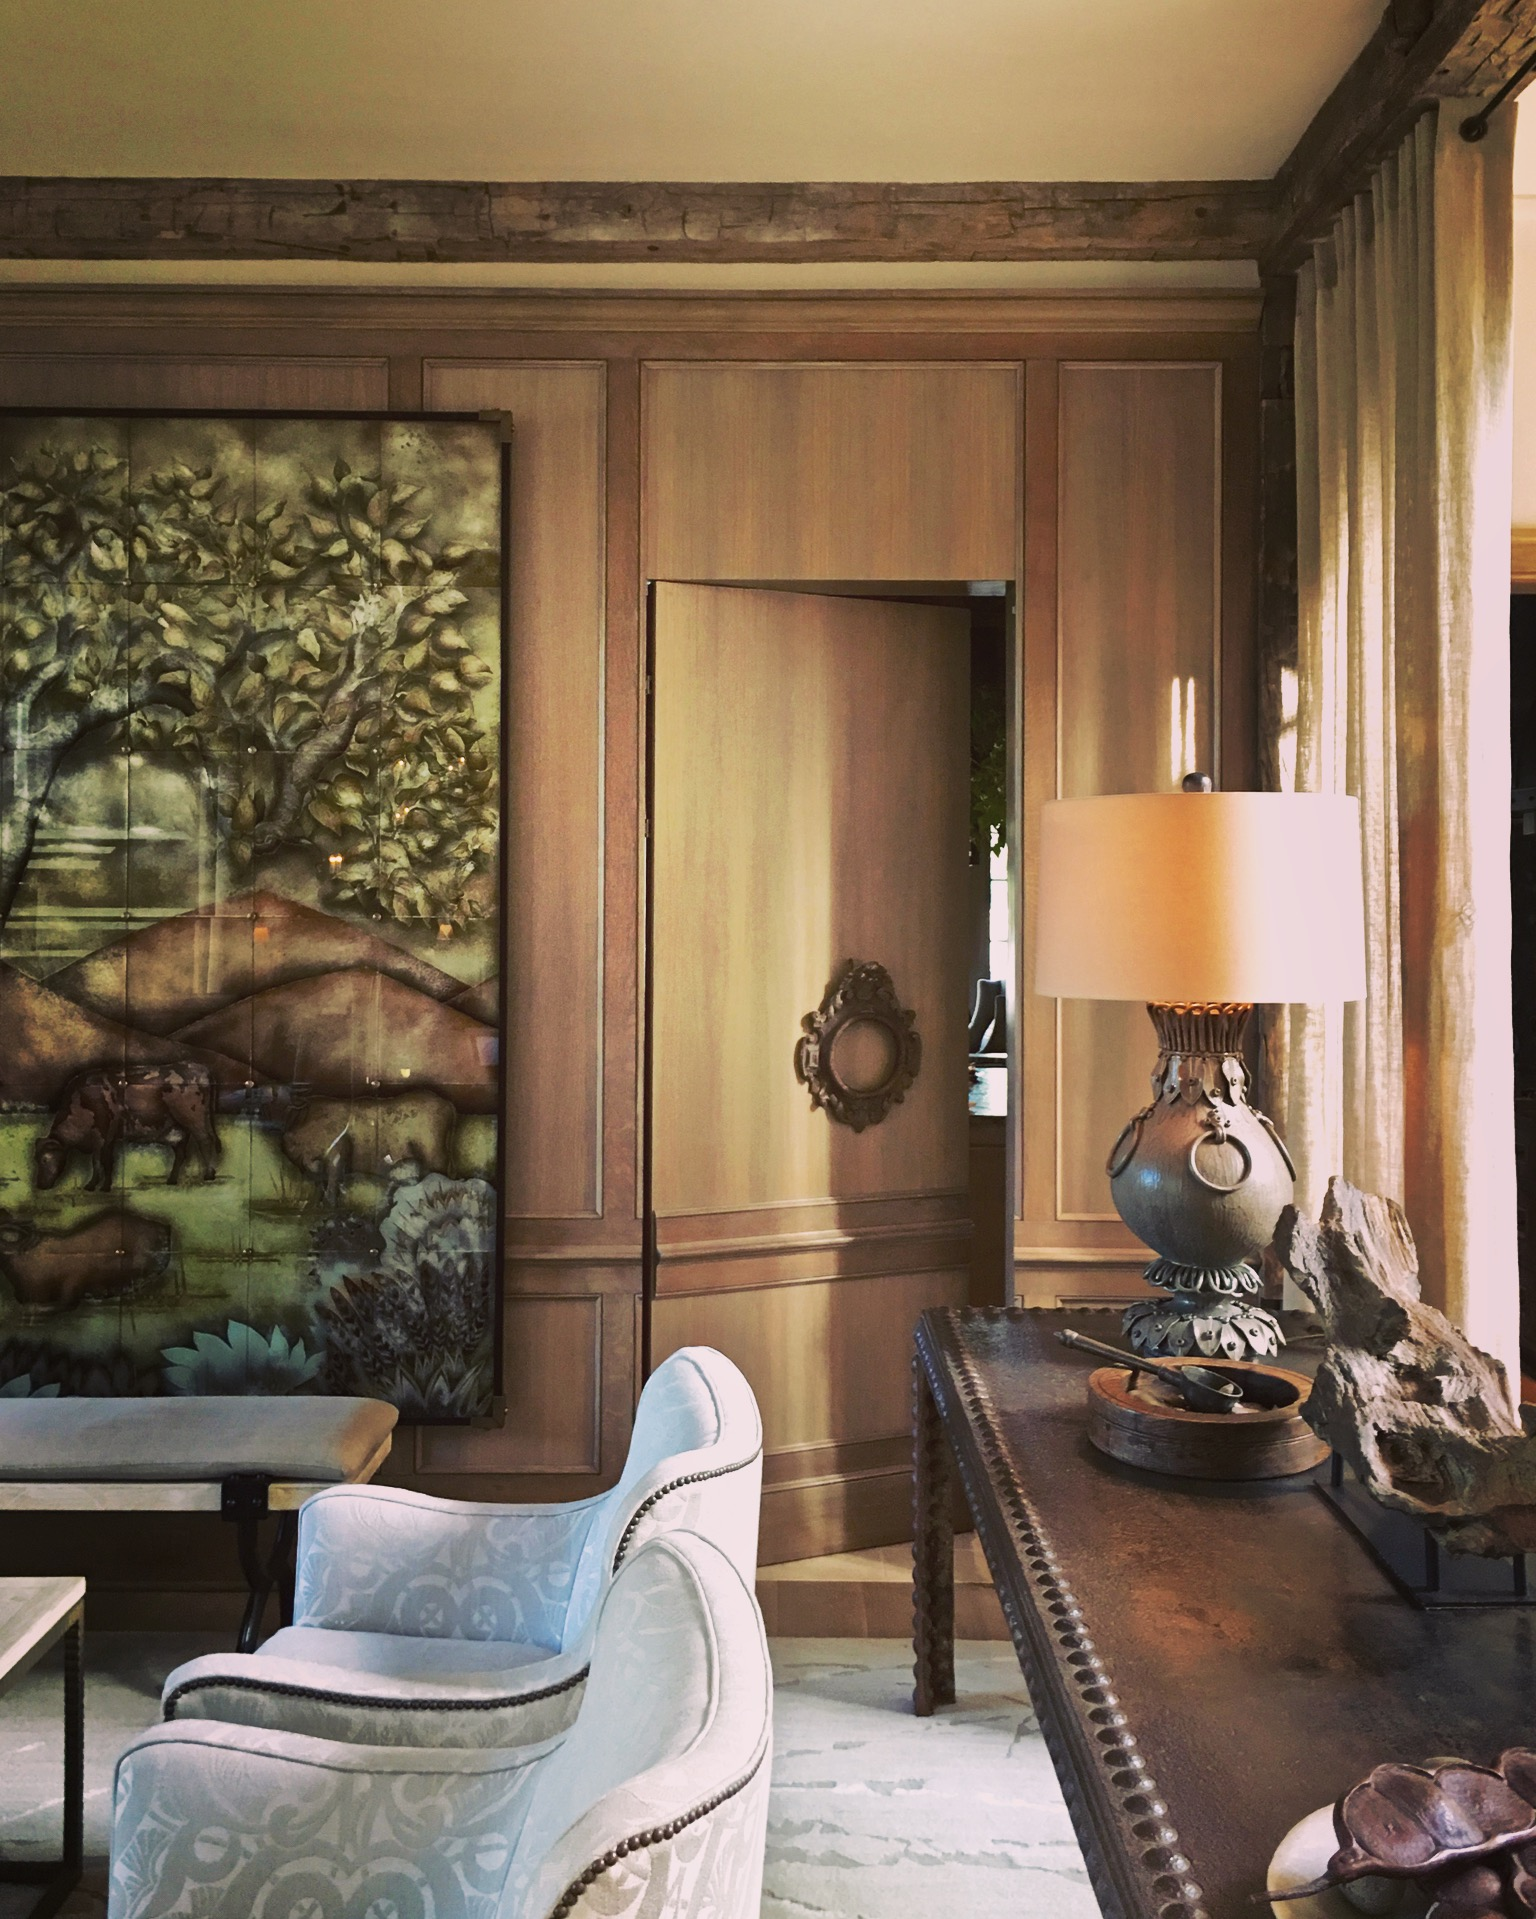 The Foliage Table lamp (available through Arteriors) was based on two antique lamps Barry bought in France.